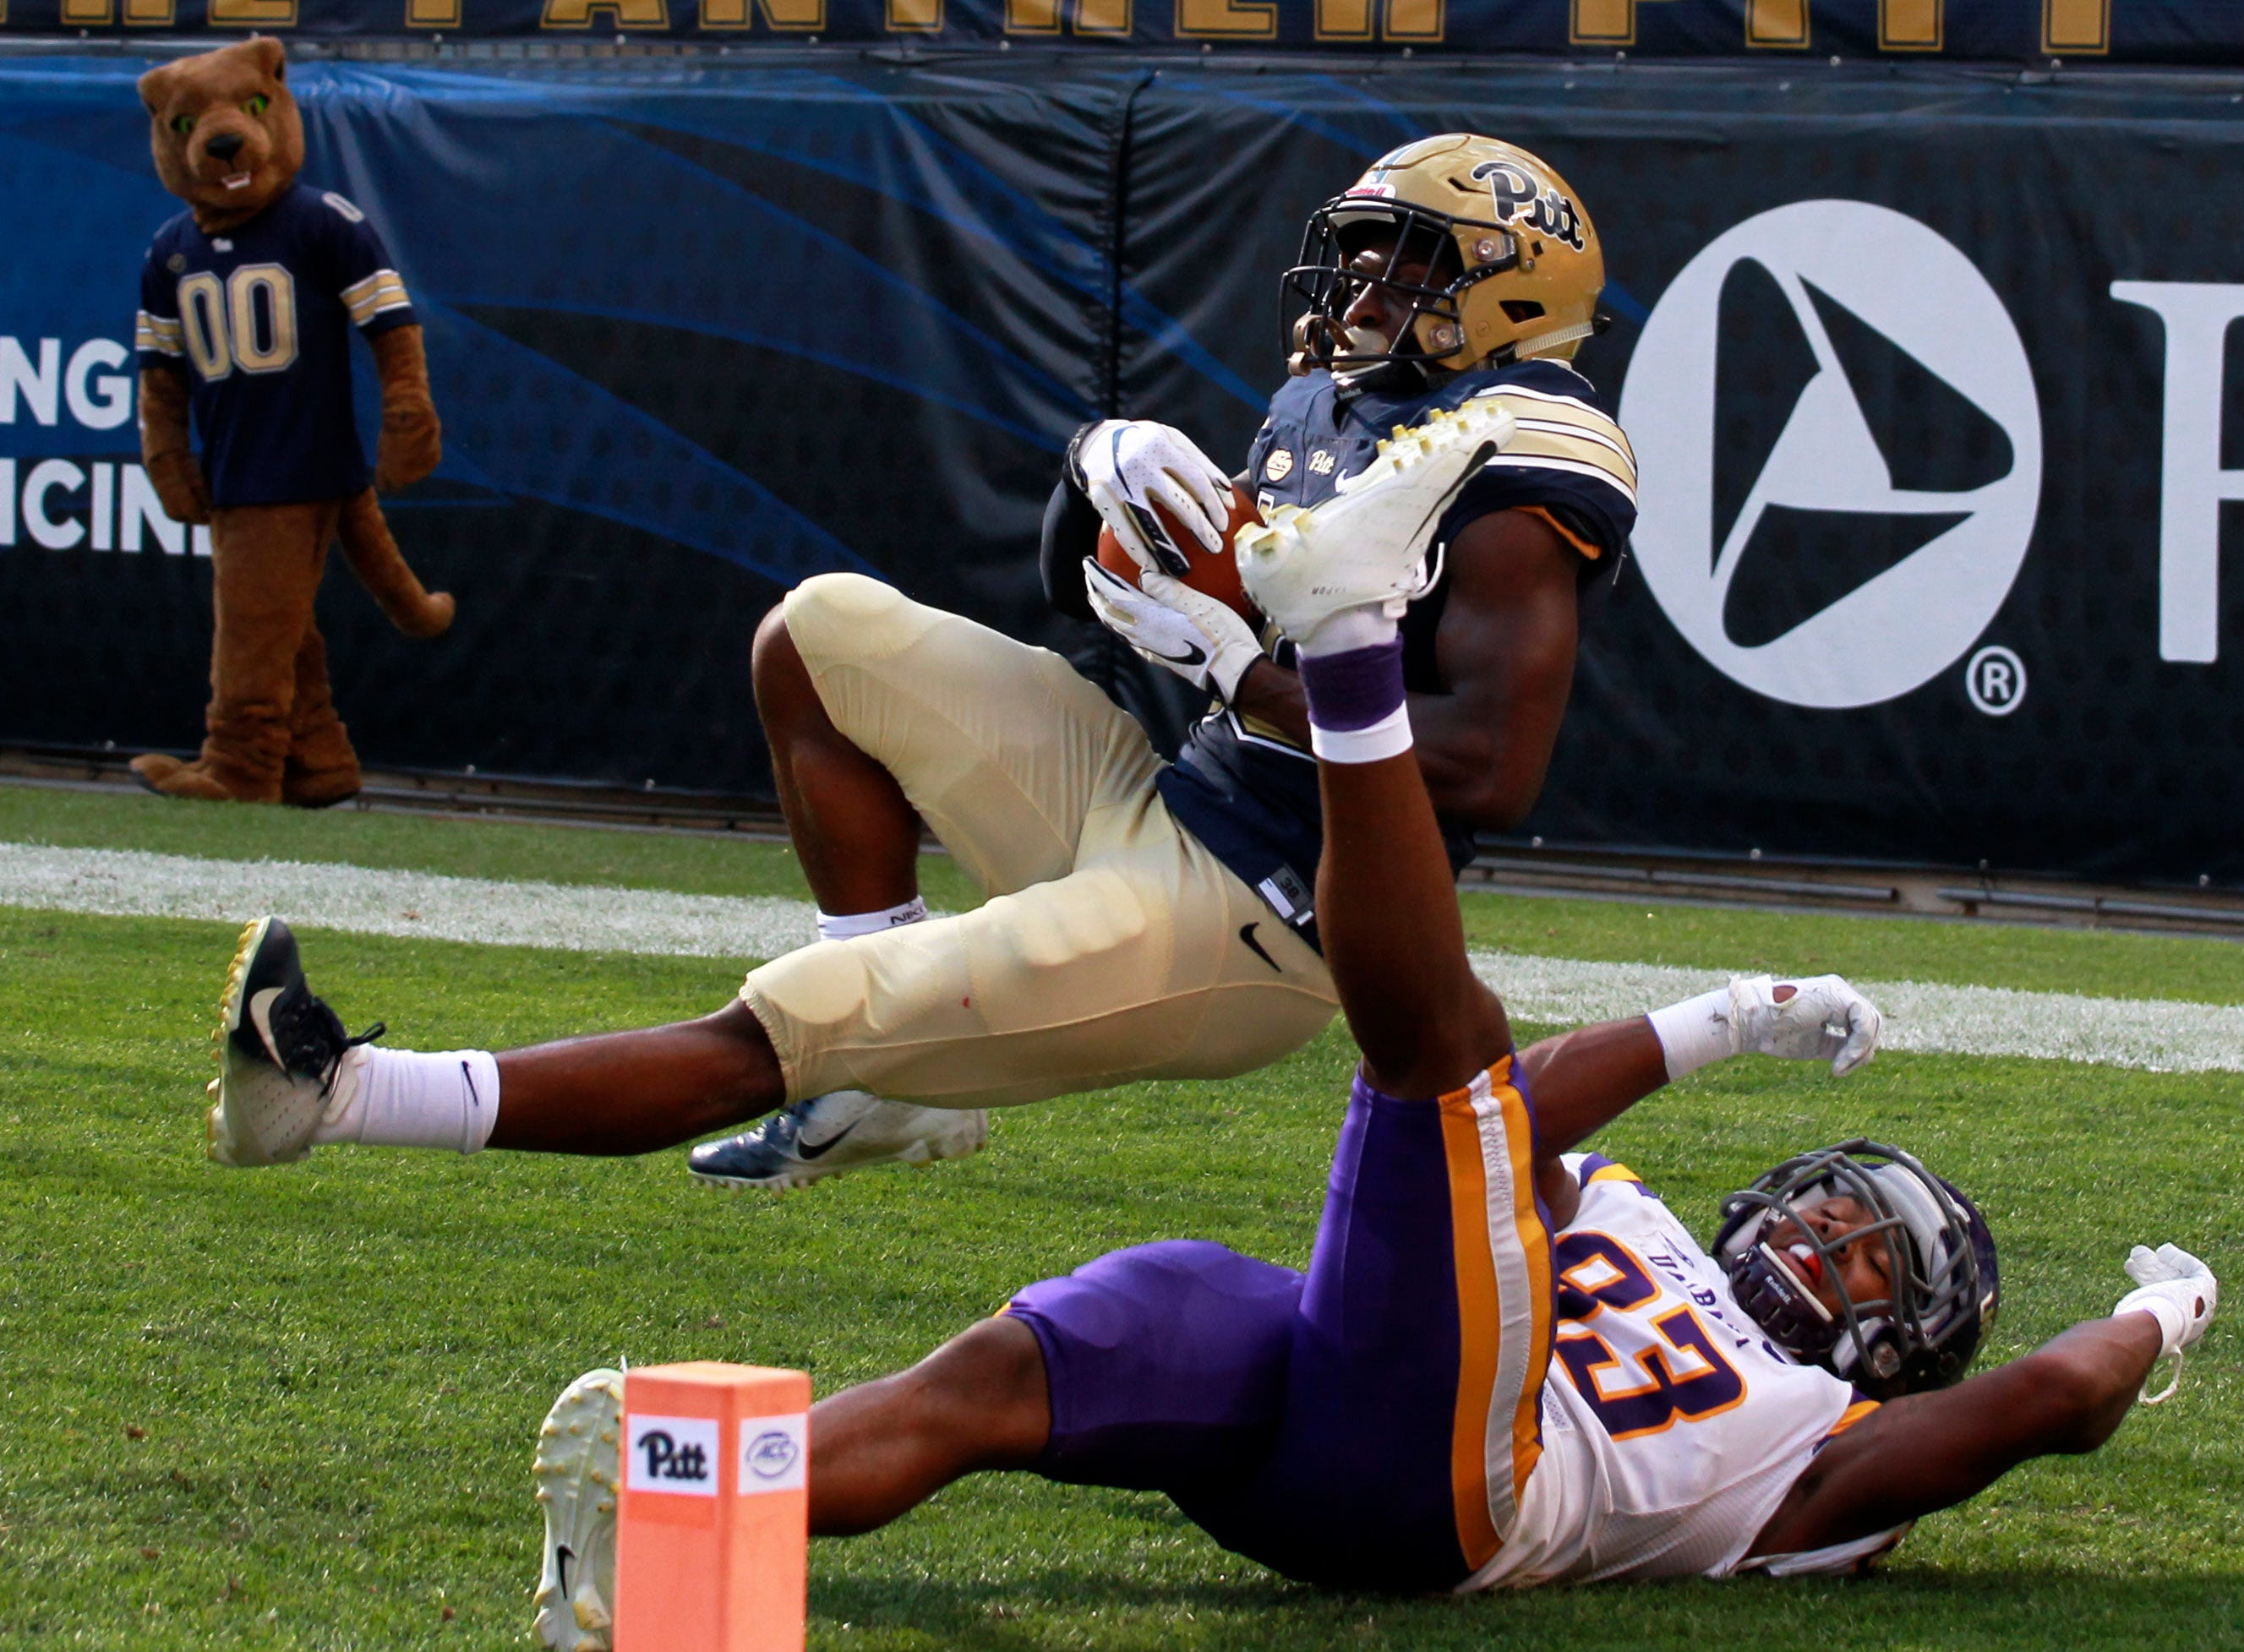 Pittsburgh Panthers defensive back Damarri Mathis (16) intercepts a pass in the end zone intended for Albany Great Danes wide receiver Donovan McDonald (83) during the third quarter at Heinz Field.